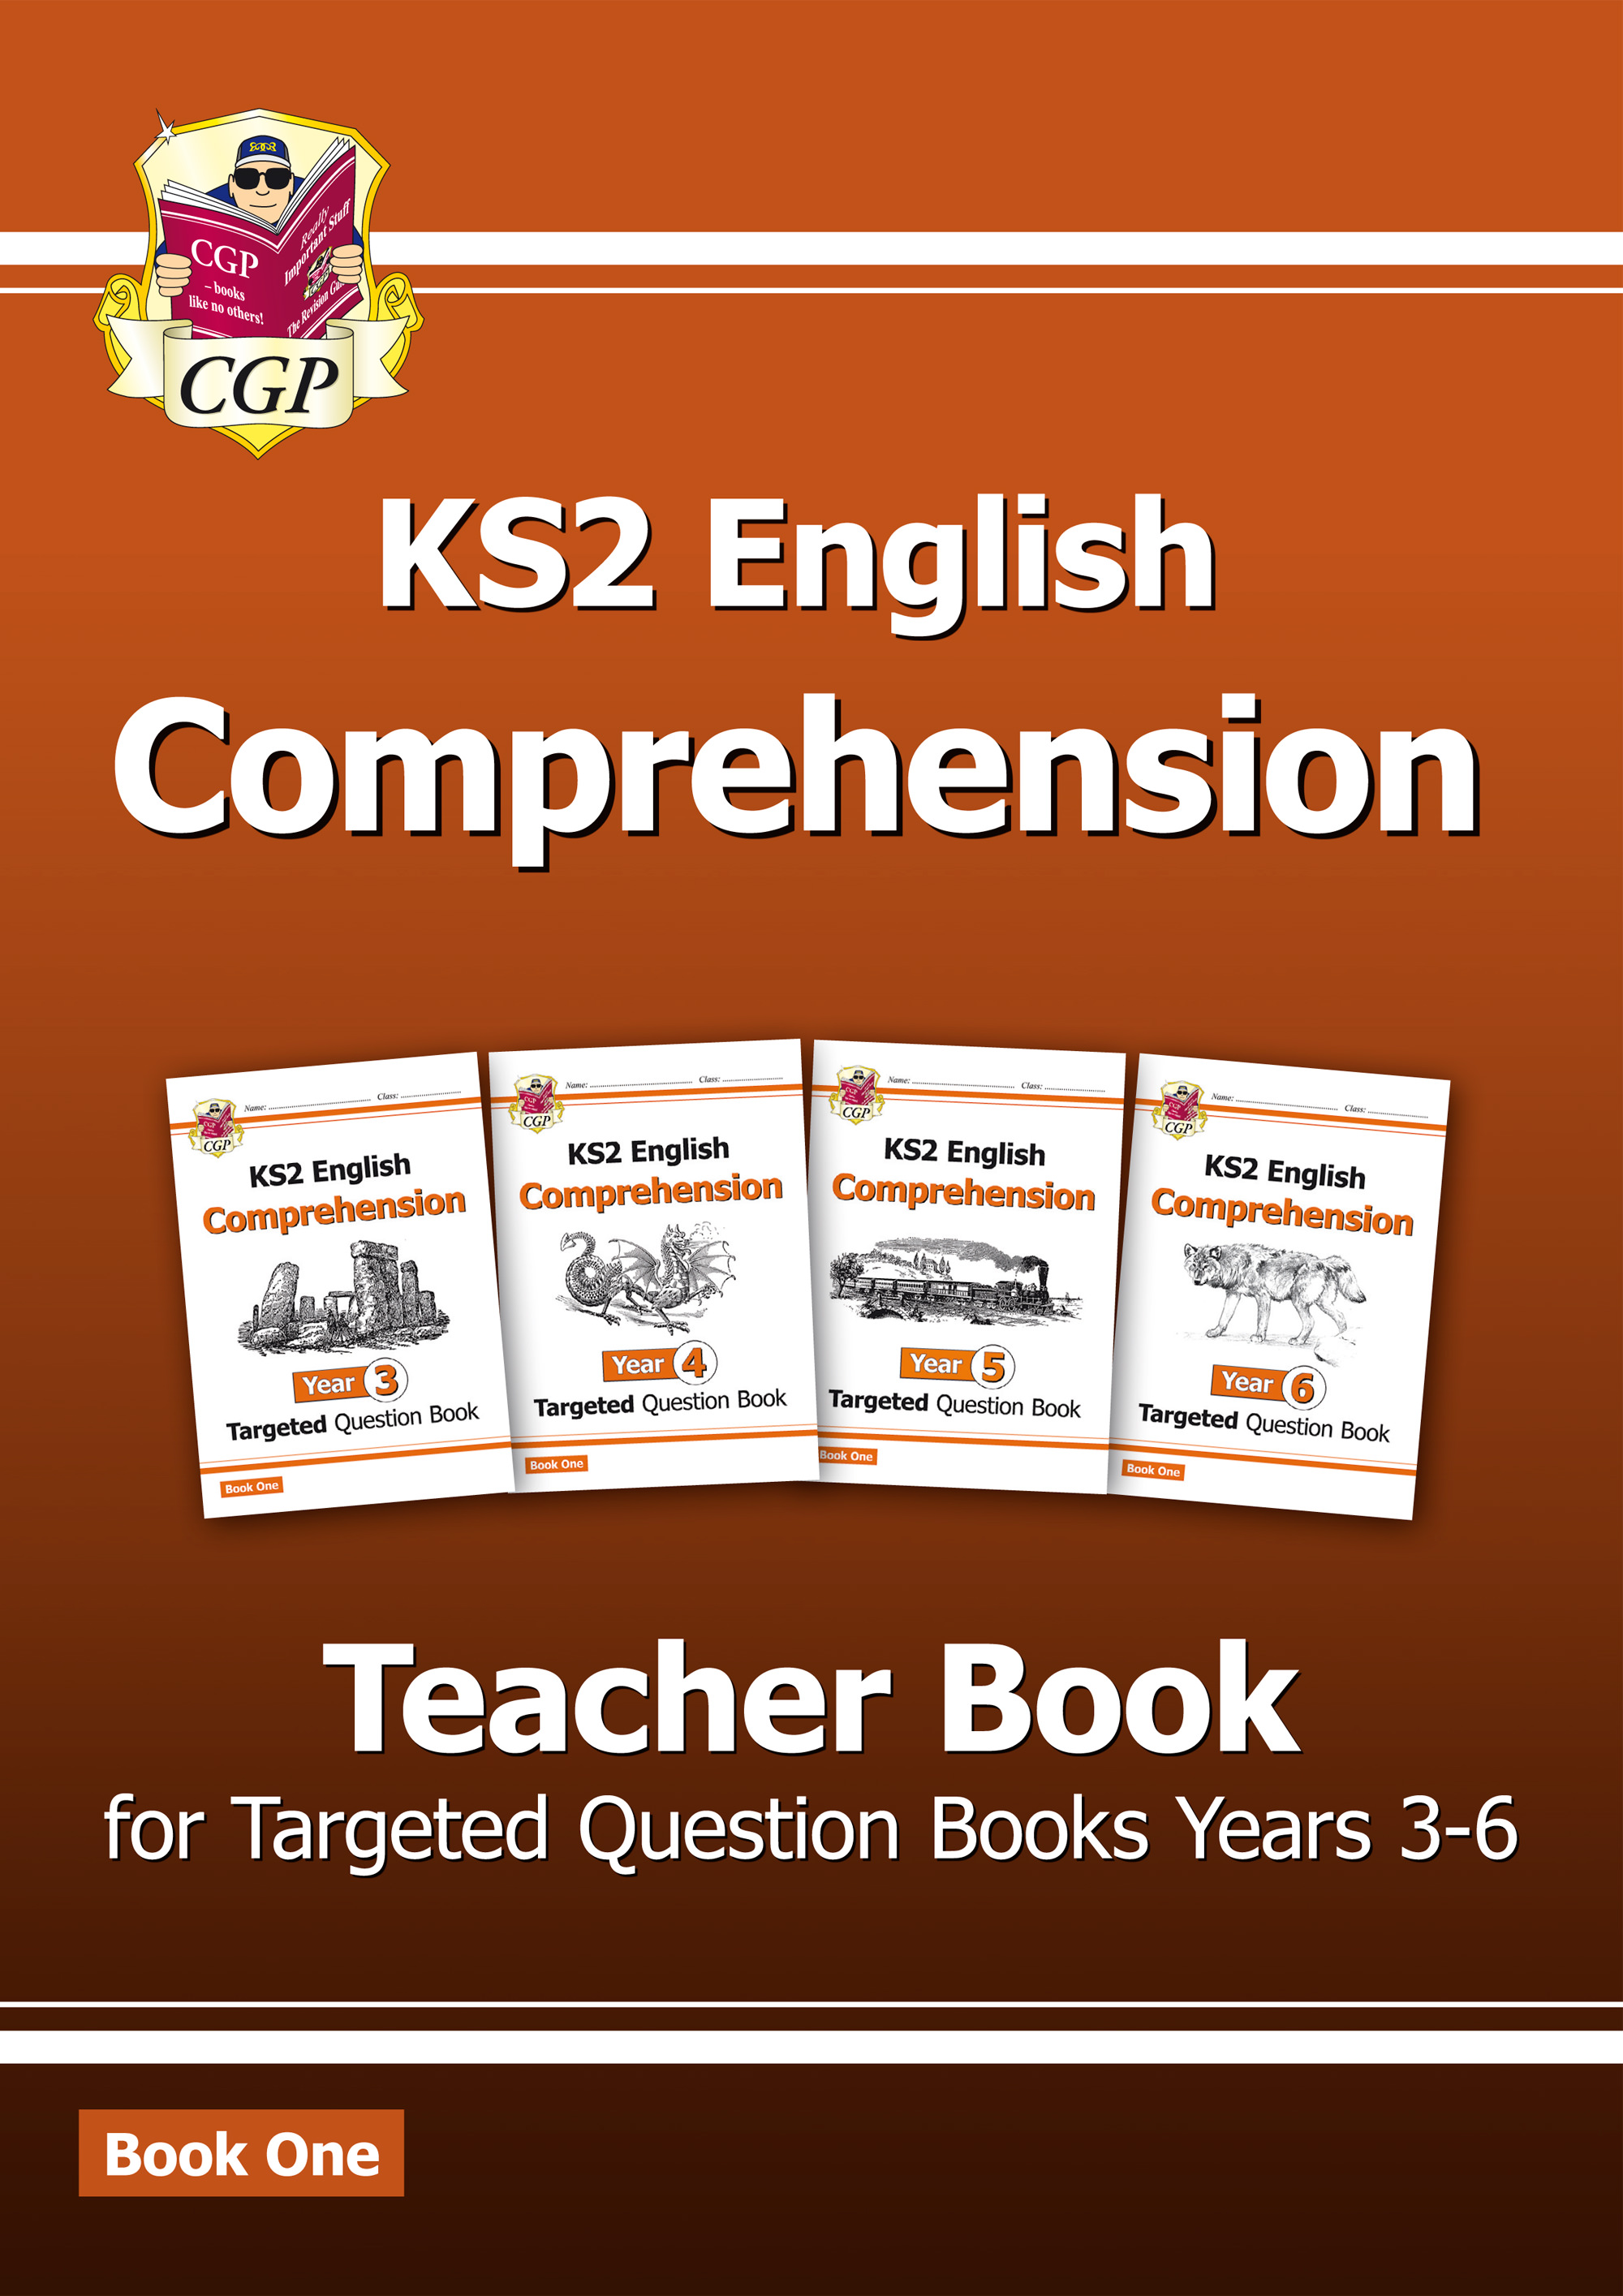 ECT21 - New KS2 English Targeted Comprehension: Teacher Book 1, Years 3-6